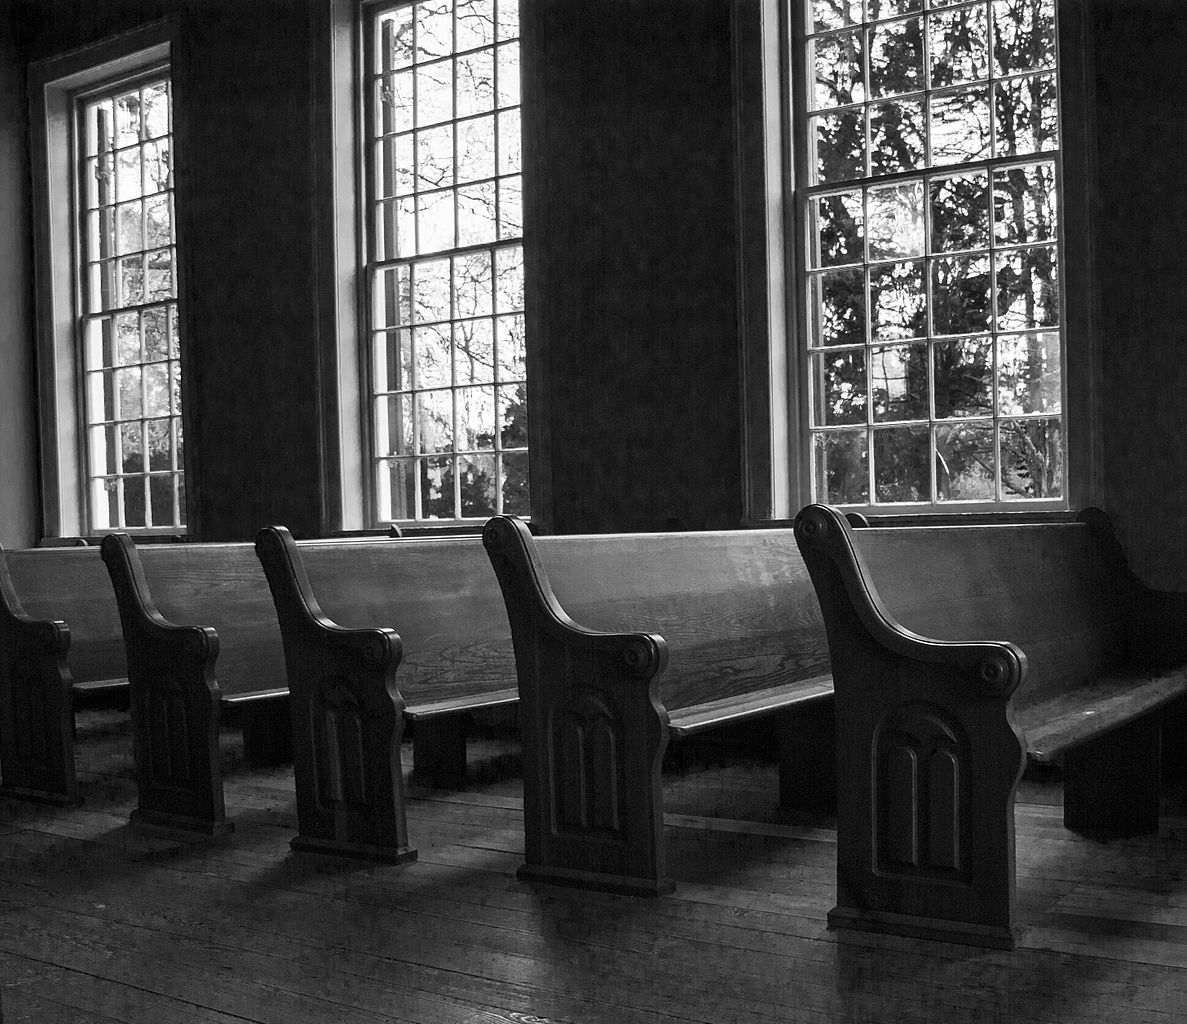 Church_pews,_Old_Brick_Church,_Mooresville,_AL,_image_by_Marjorie_Kaufman_01